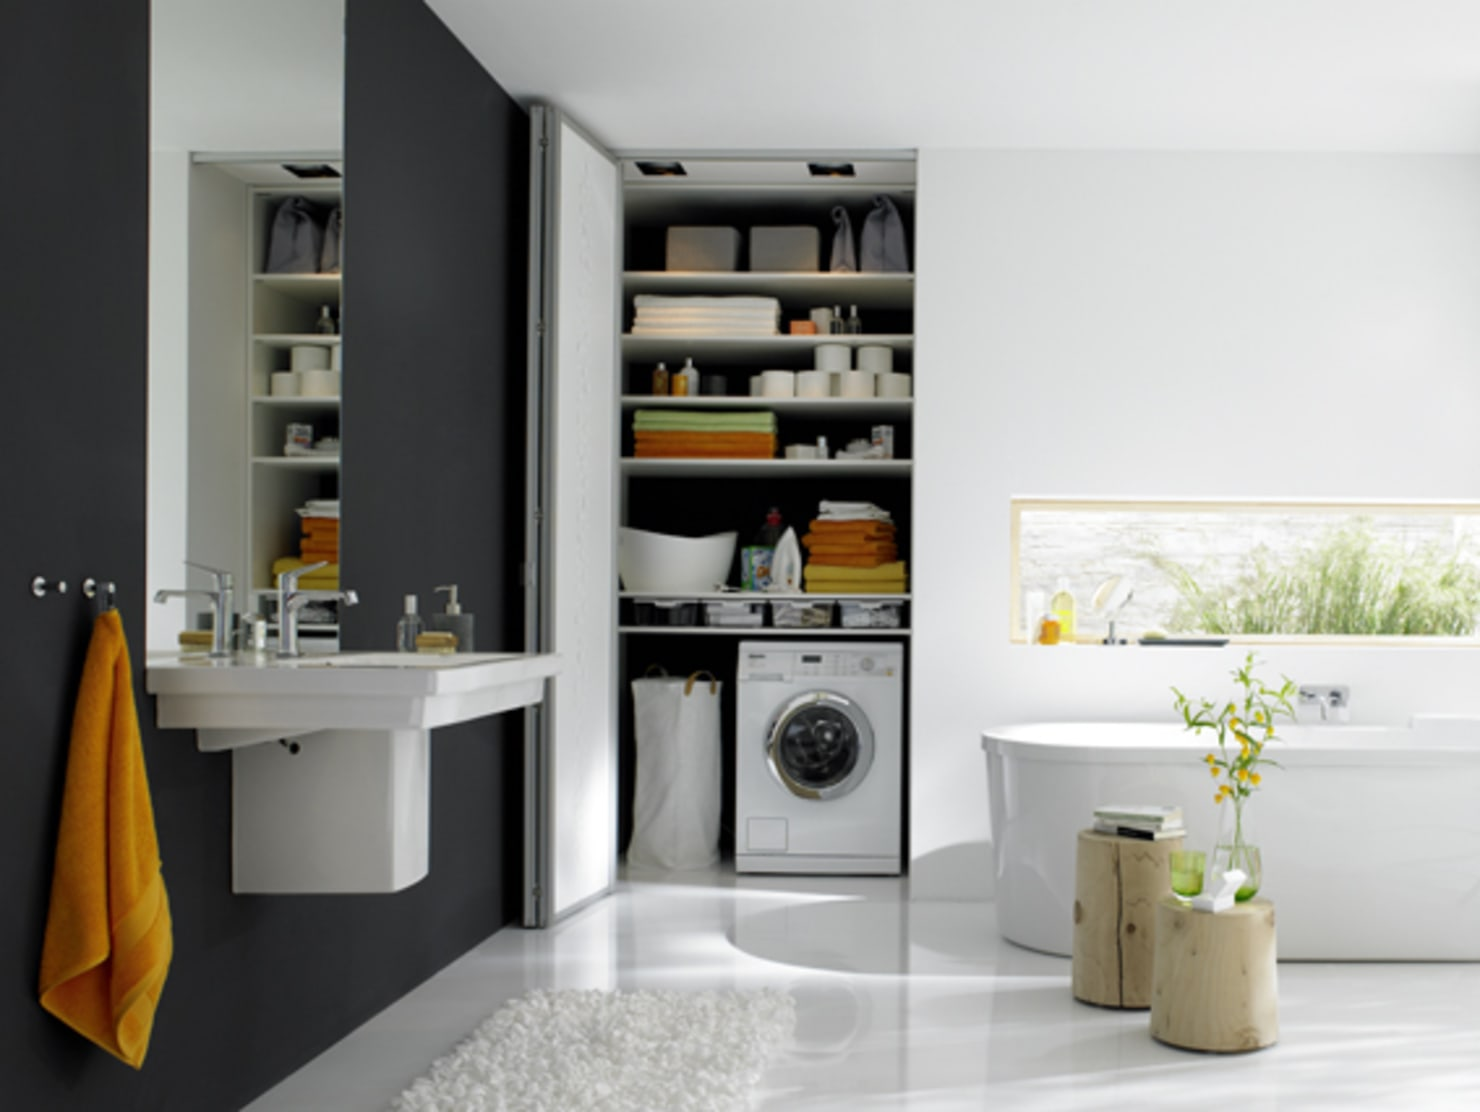 6 brilliant ideas to hide the washing machine in the bathroom